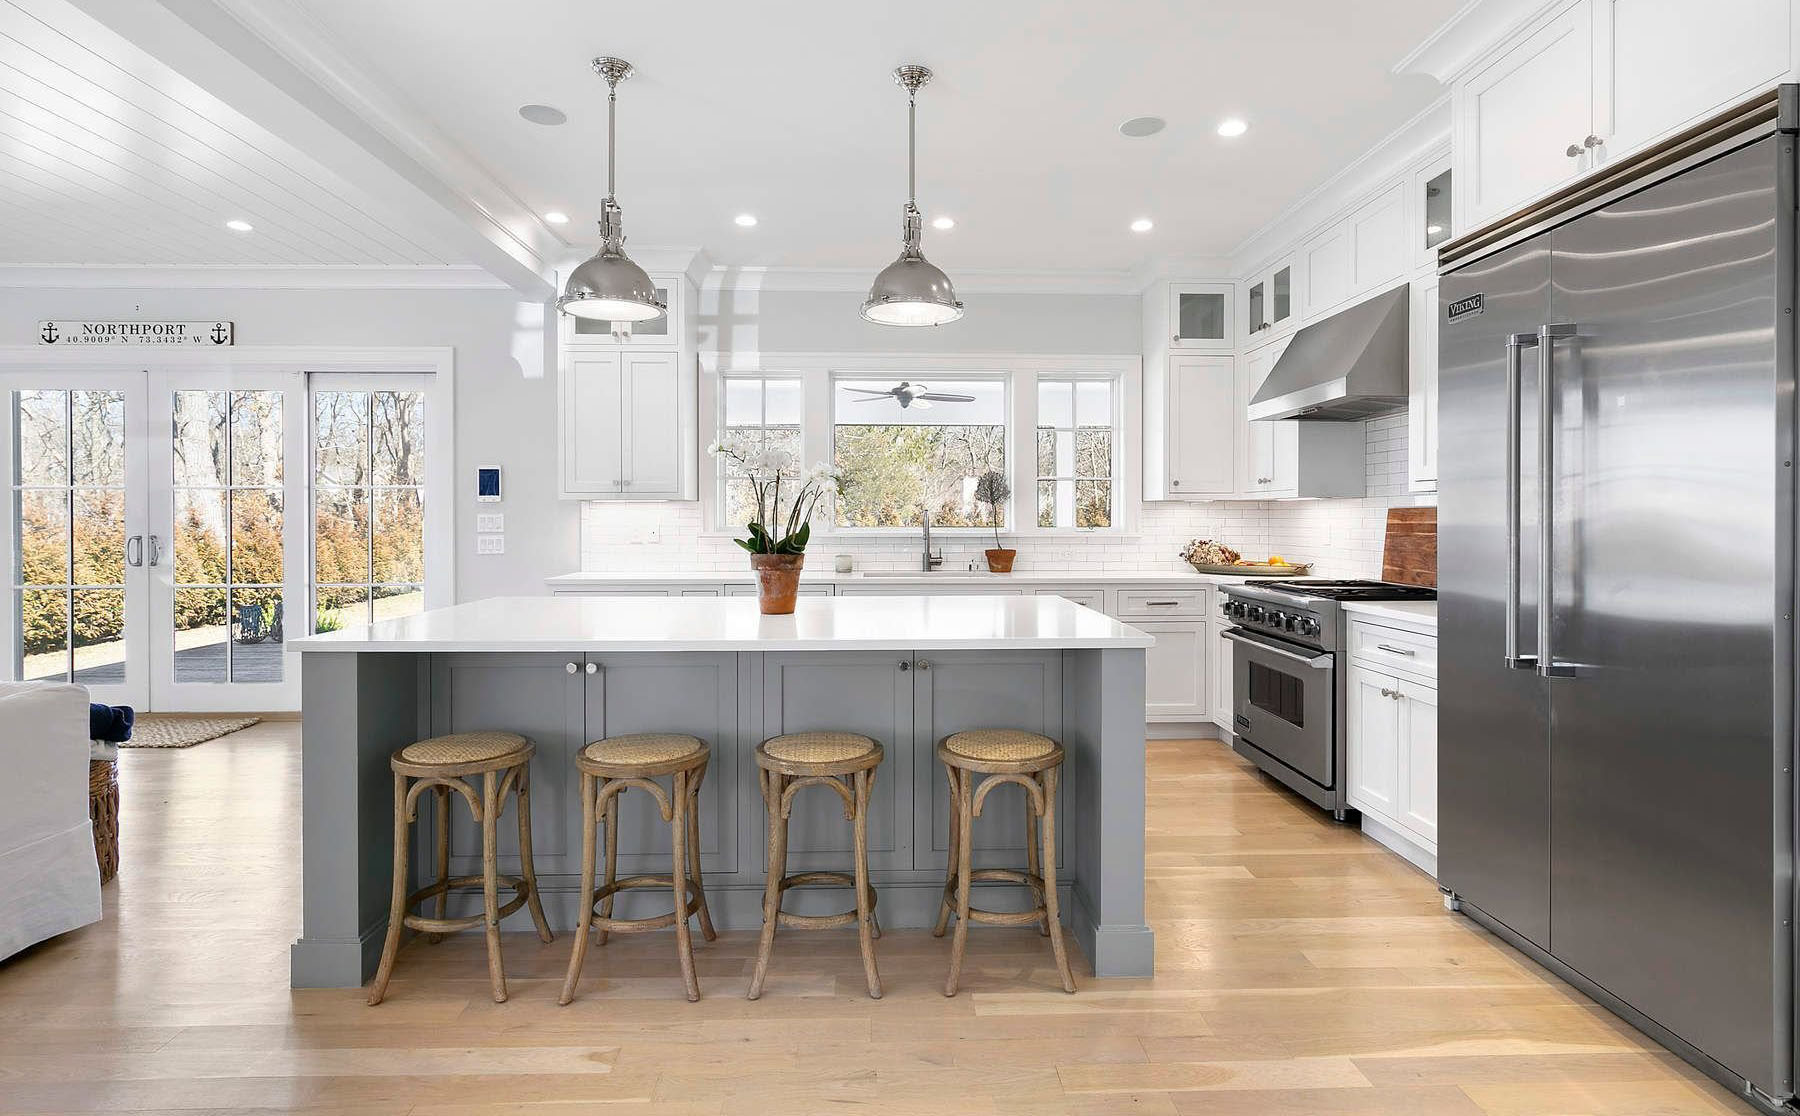 White and gray multi color kitchen cabinets with white quartz counters, white subway tile backsplash and pale wood floors.